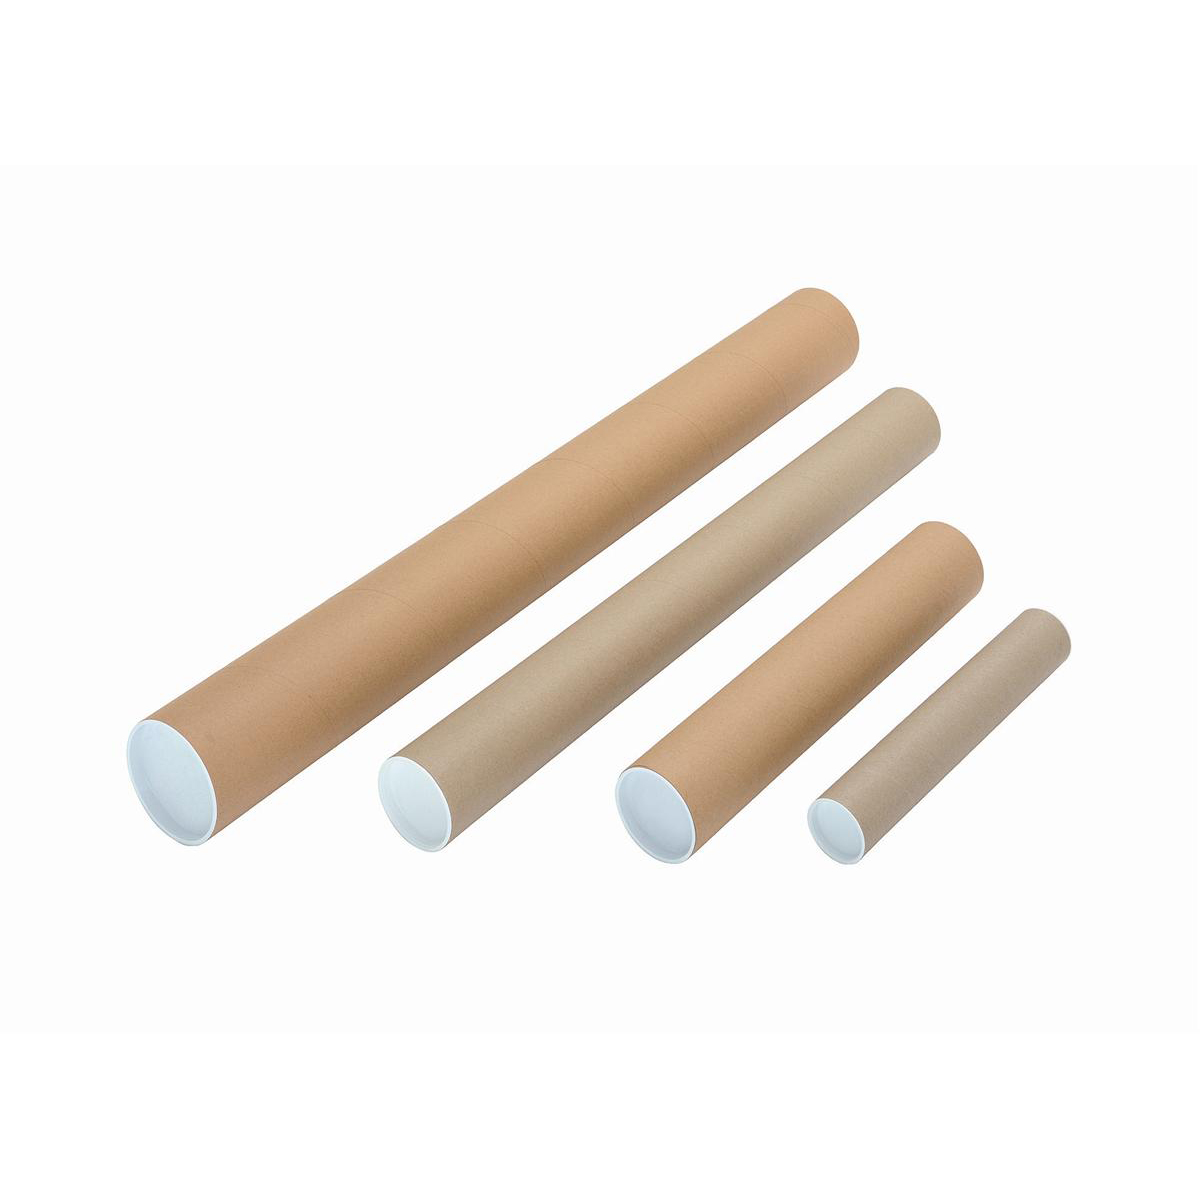 Postal Tube Cardboard with Plastic End Caps A4-A3 L330xDia.50mm Pack 25